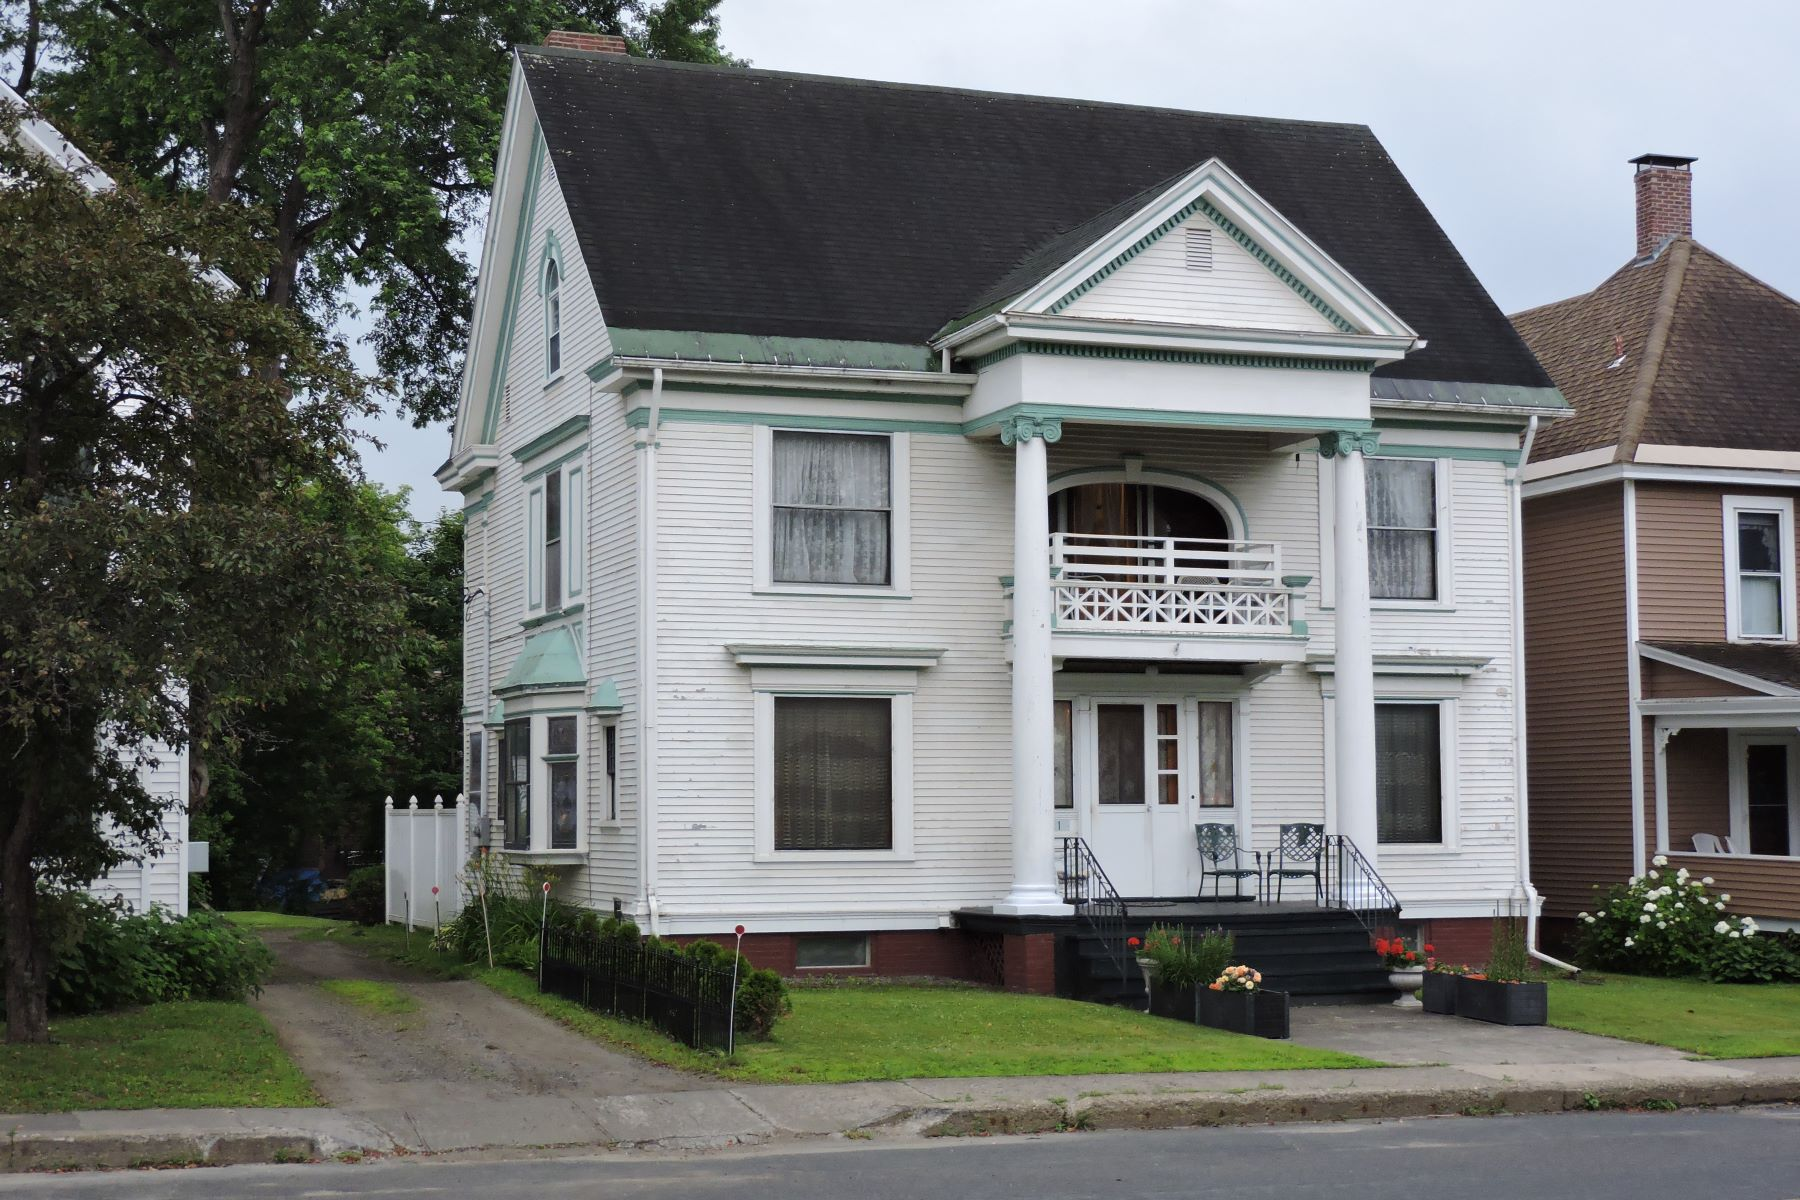 Single Family Homes for Sale at 51 Maple Street, Lyndon 51 Maple St Lyndon, Vermont 05851 United States